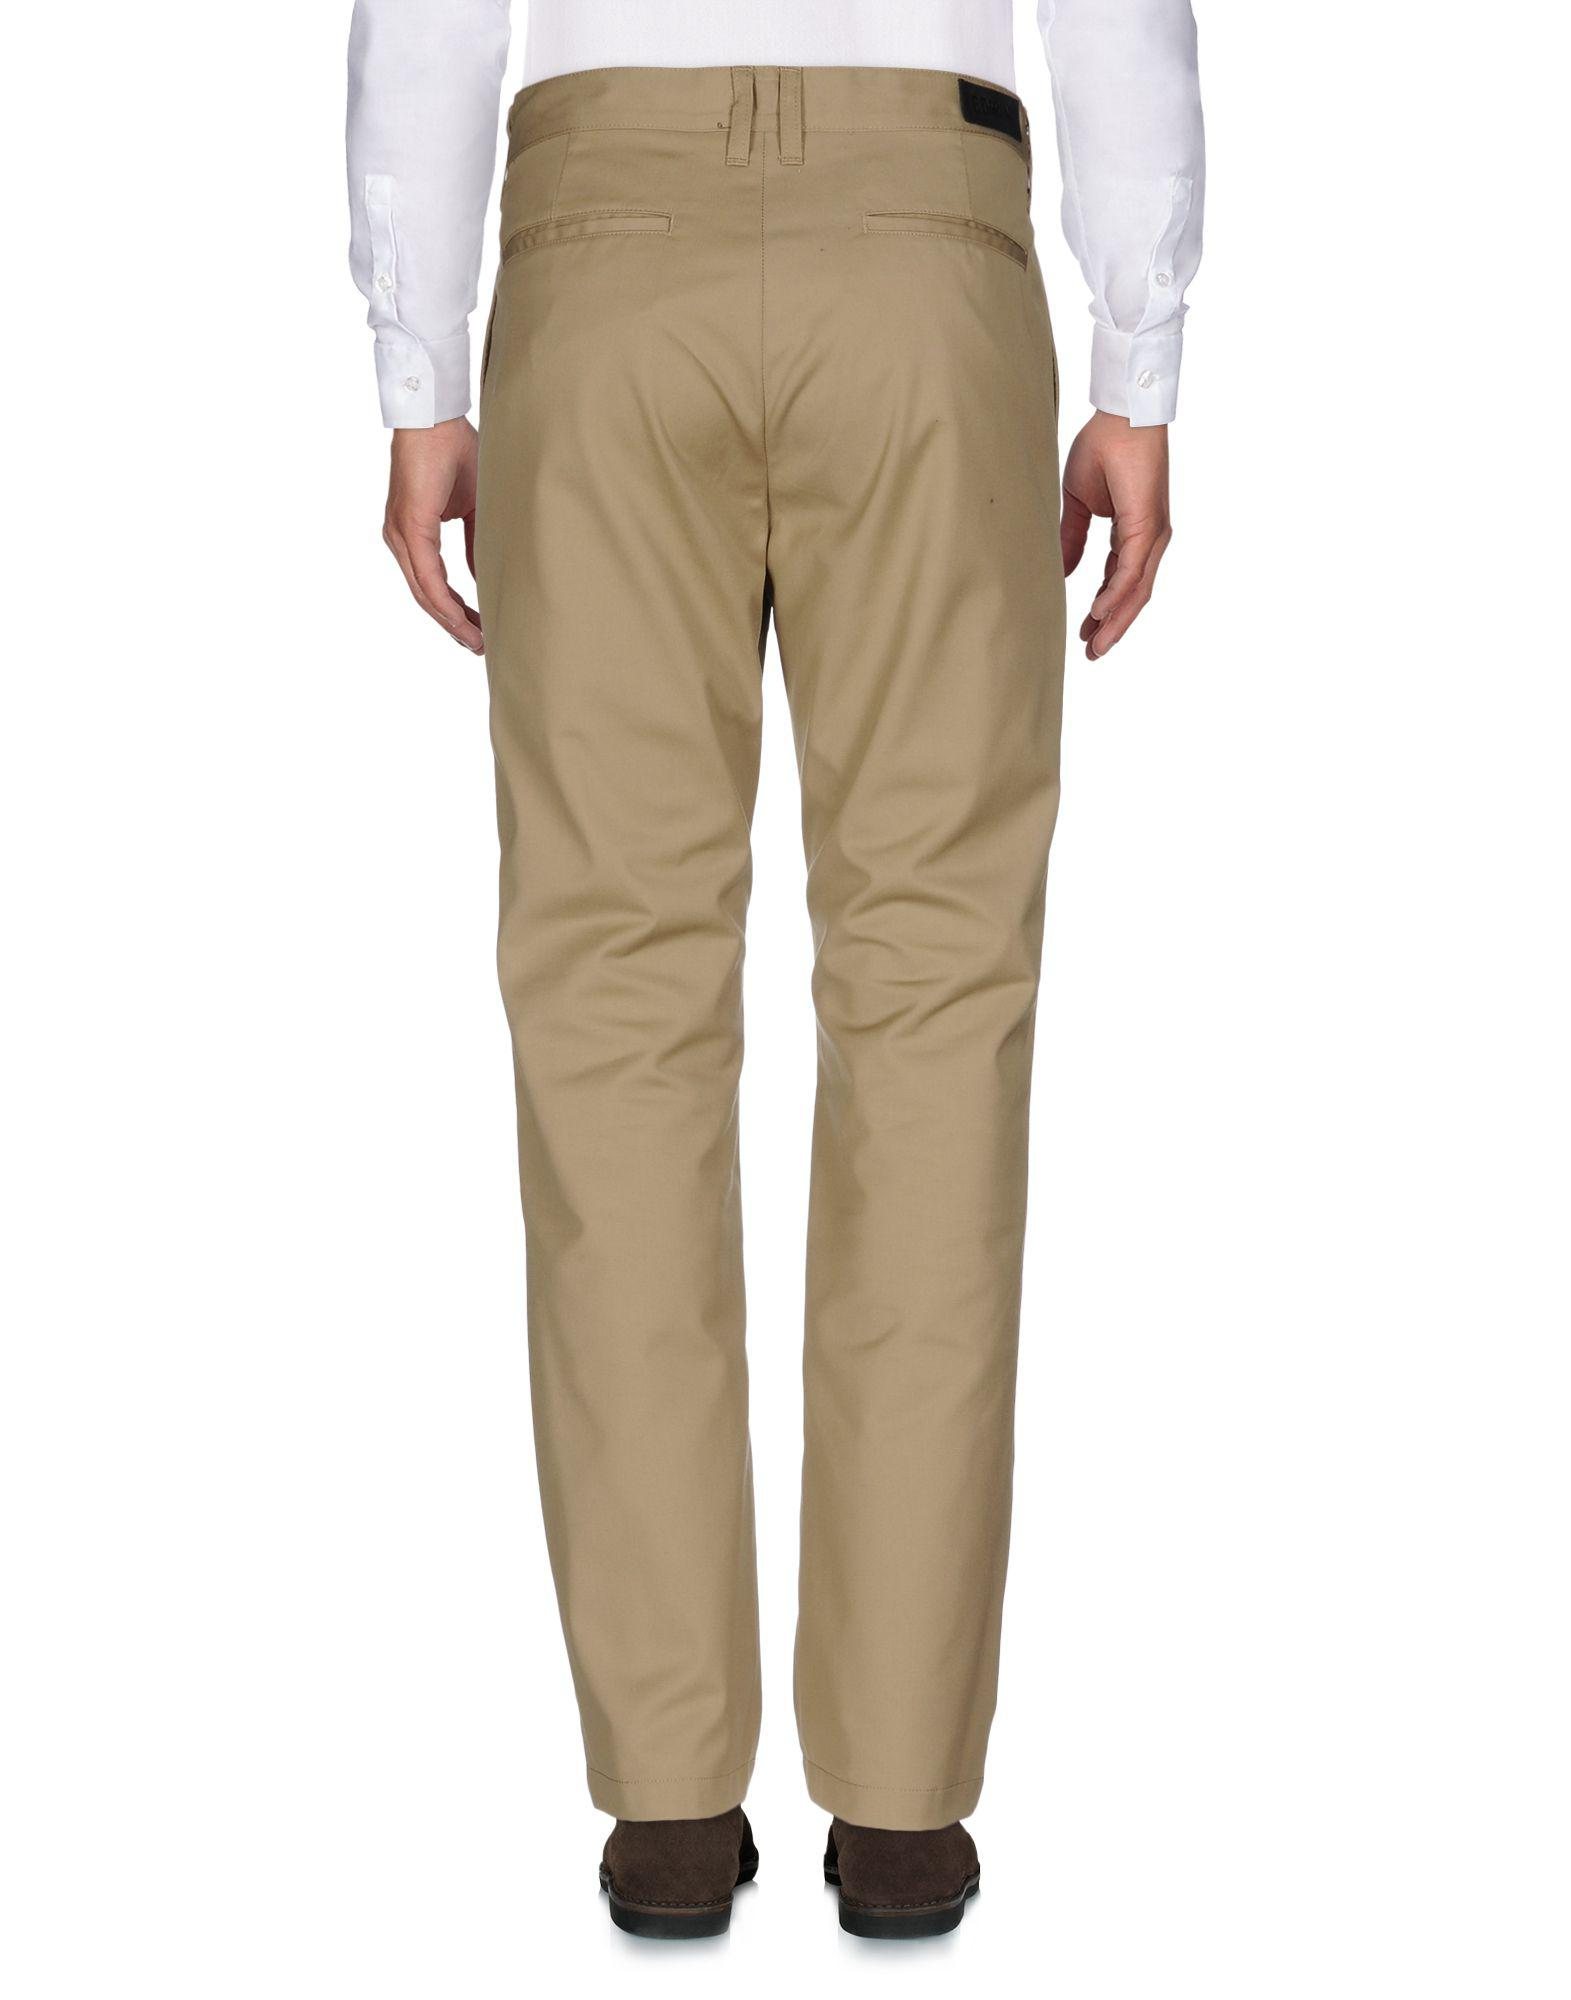 Edwin Synthetic Casual Trouser in Sand (Natural) for Men